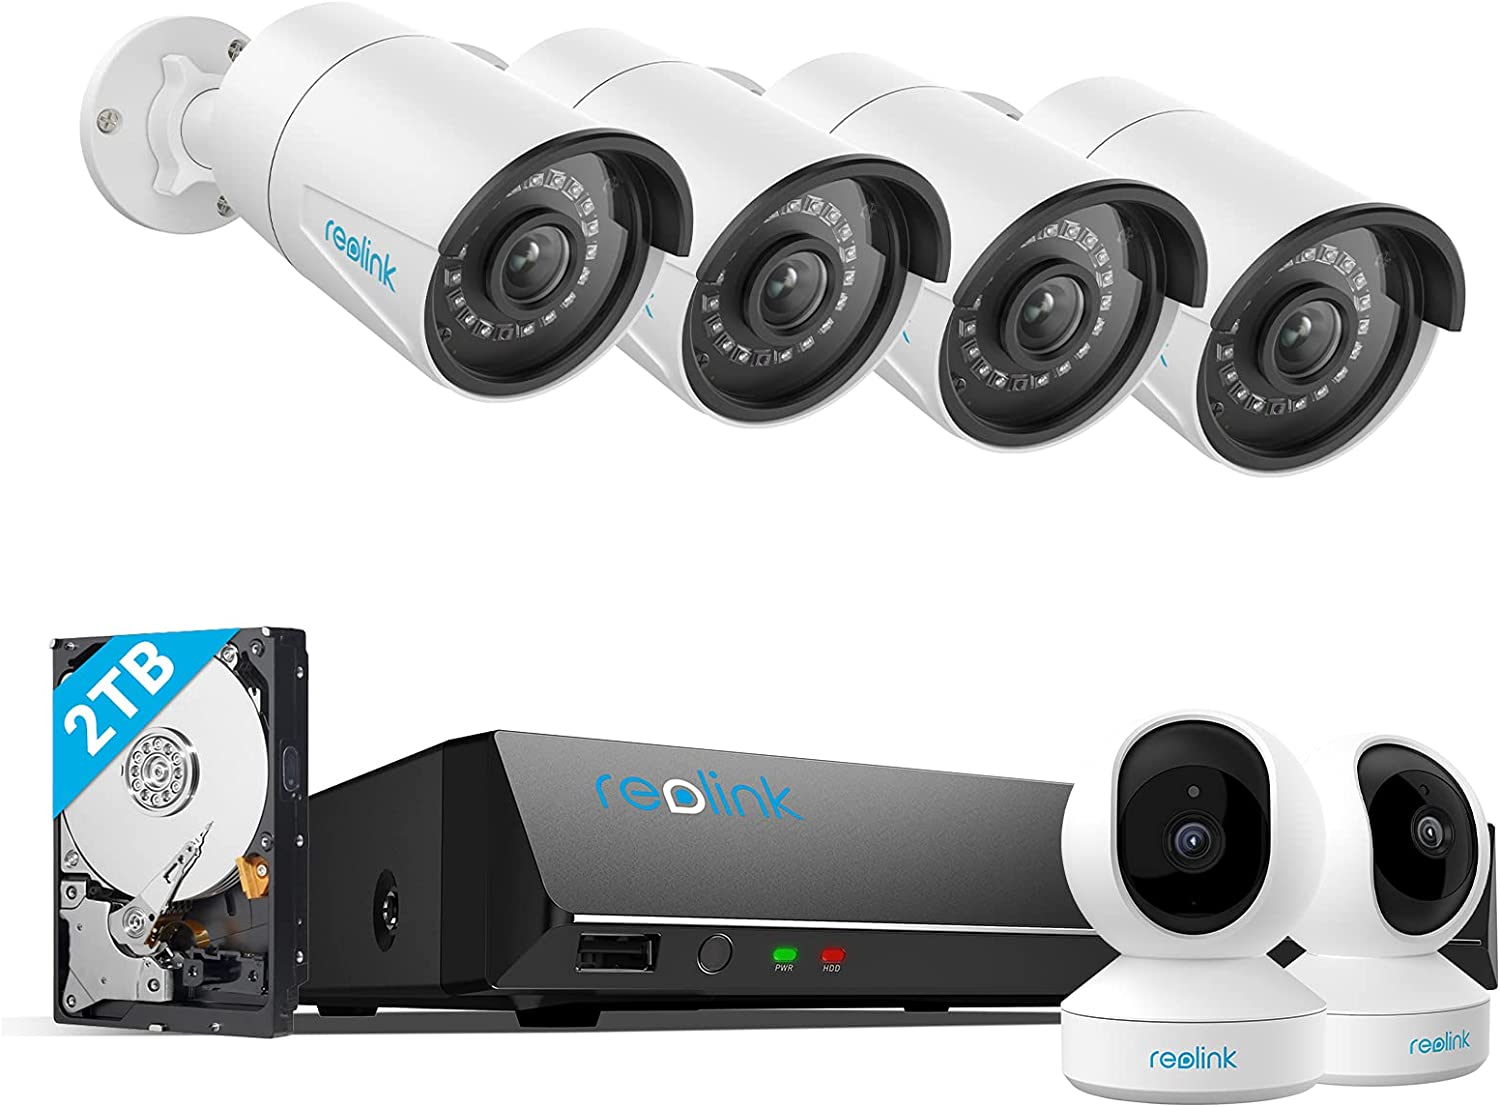 Reolink 4MP Indoor Security Camera E1 Pro 2 Pack Bundle with 8CH 5MP Security Camera System, RLK8-410B4-5MP